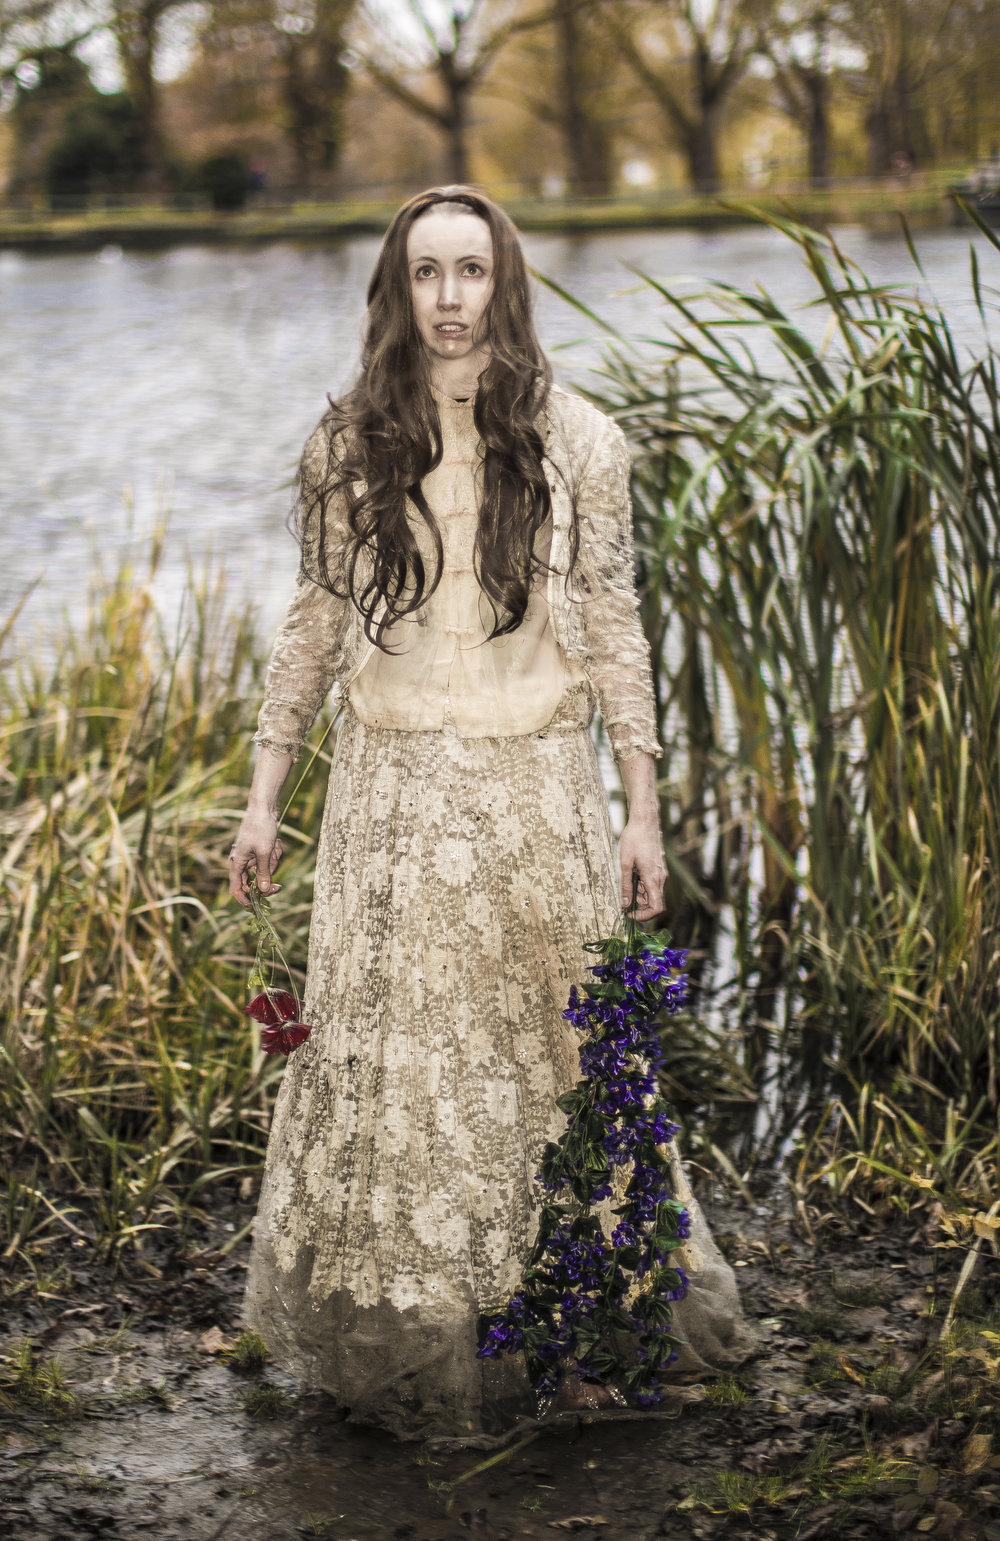 Recreation of Ophelia painting photoshoot with Thomas Hensher